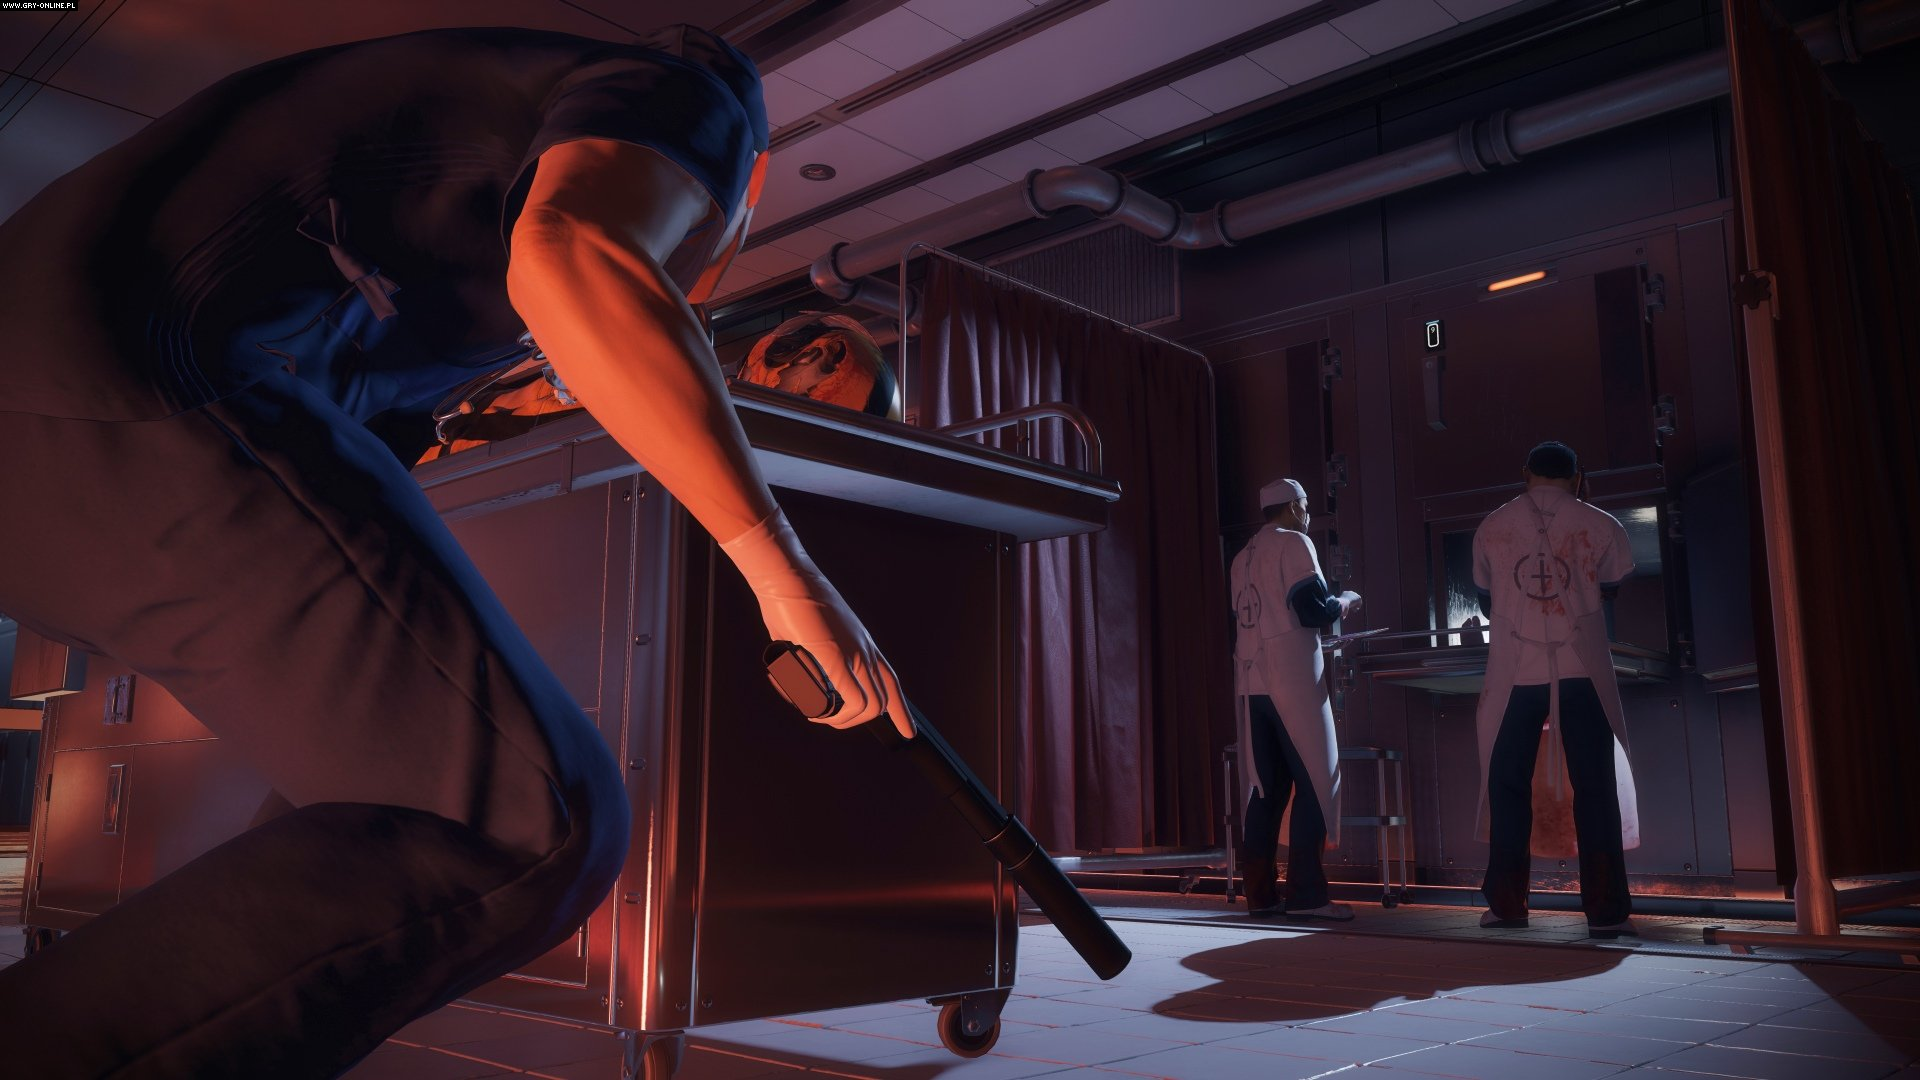 Hitman PC, PS4, XONE Games Image 4/63, IO Interactive, Square-Enix / Eidos